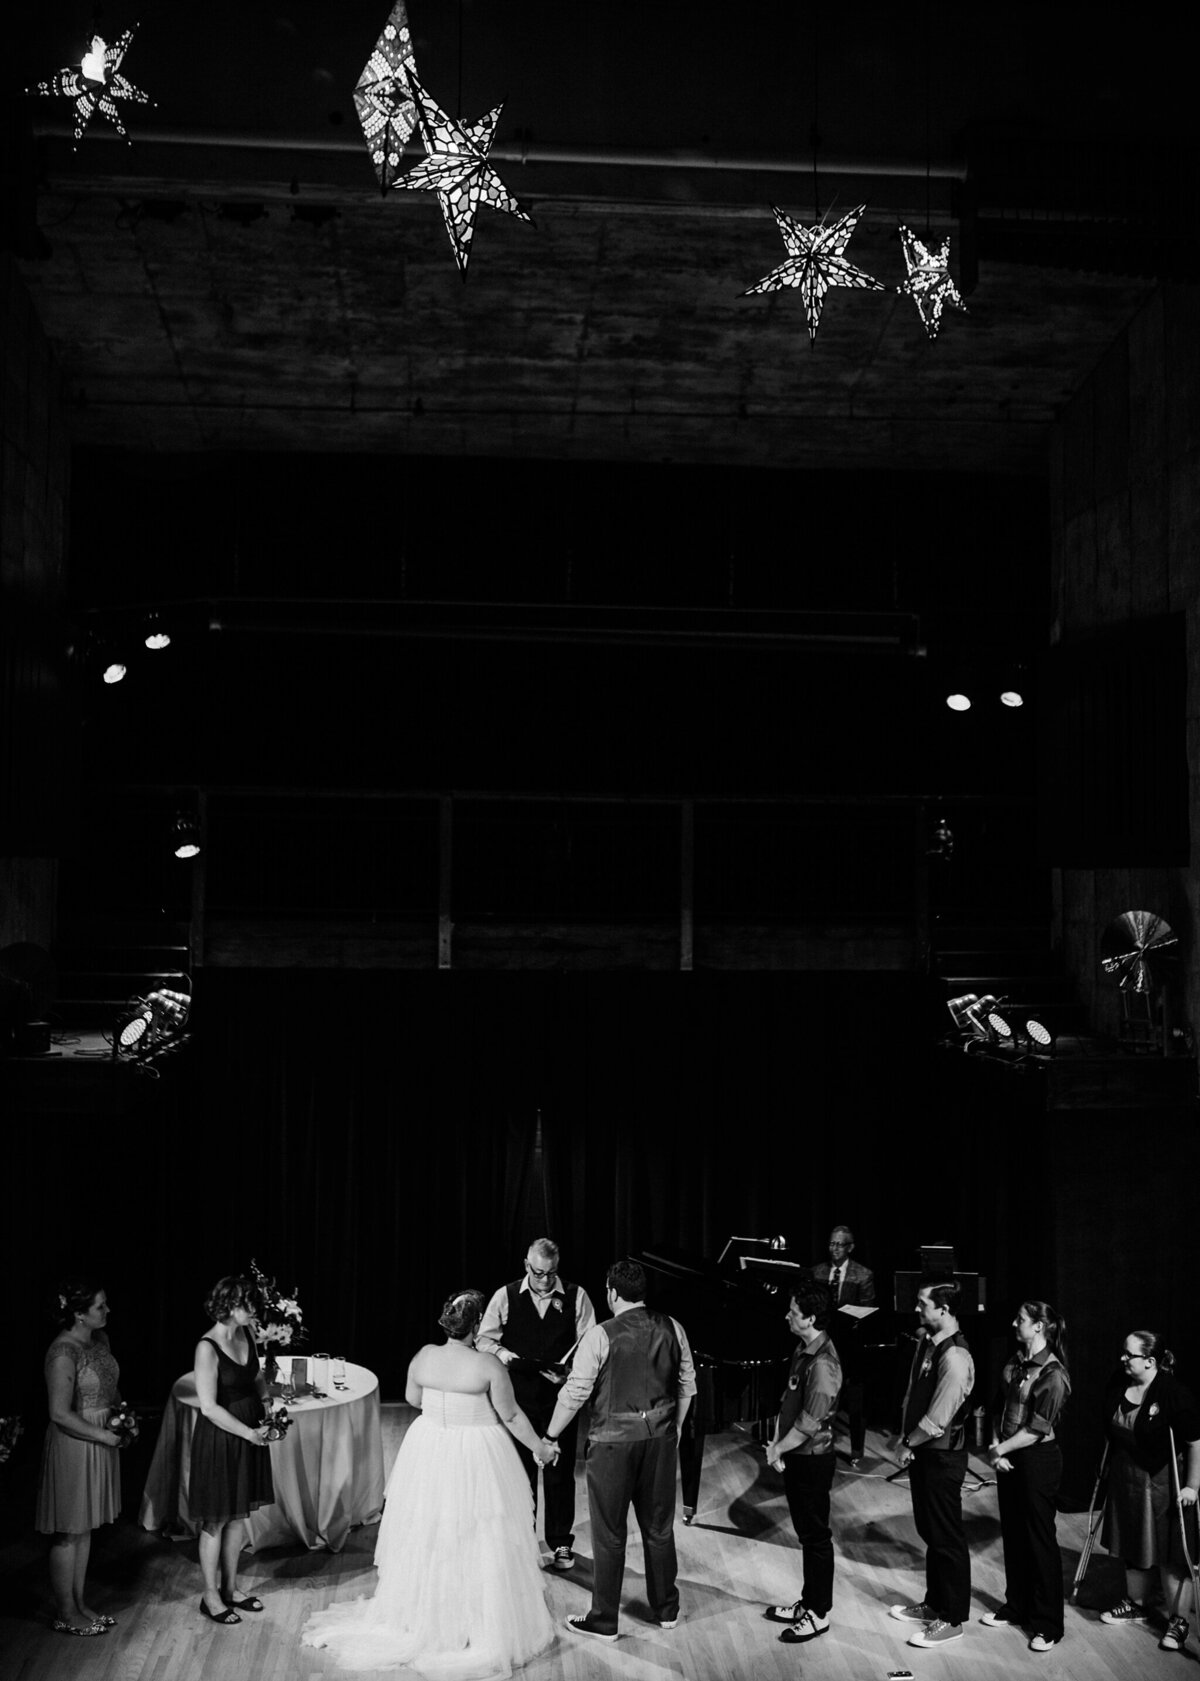 meg-thompson-photography-acorn-theater-three-oaks-michigan-wedding-emily-chris_0004